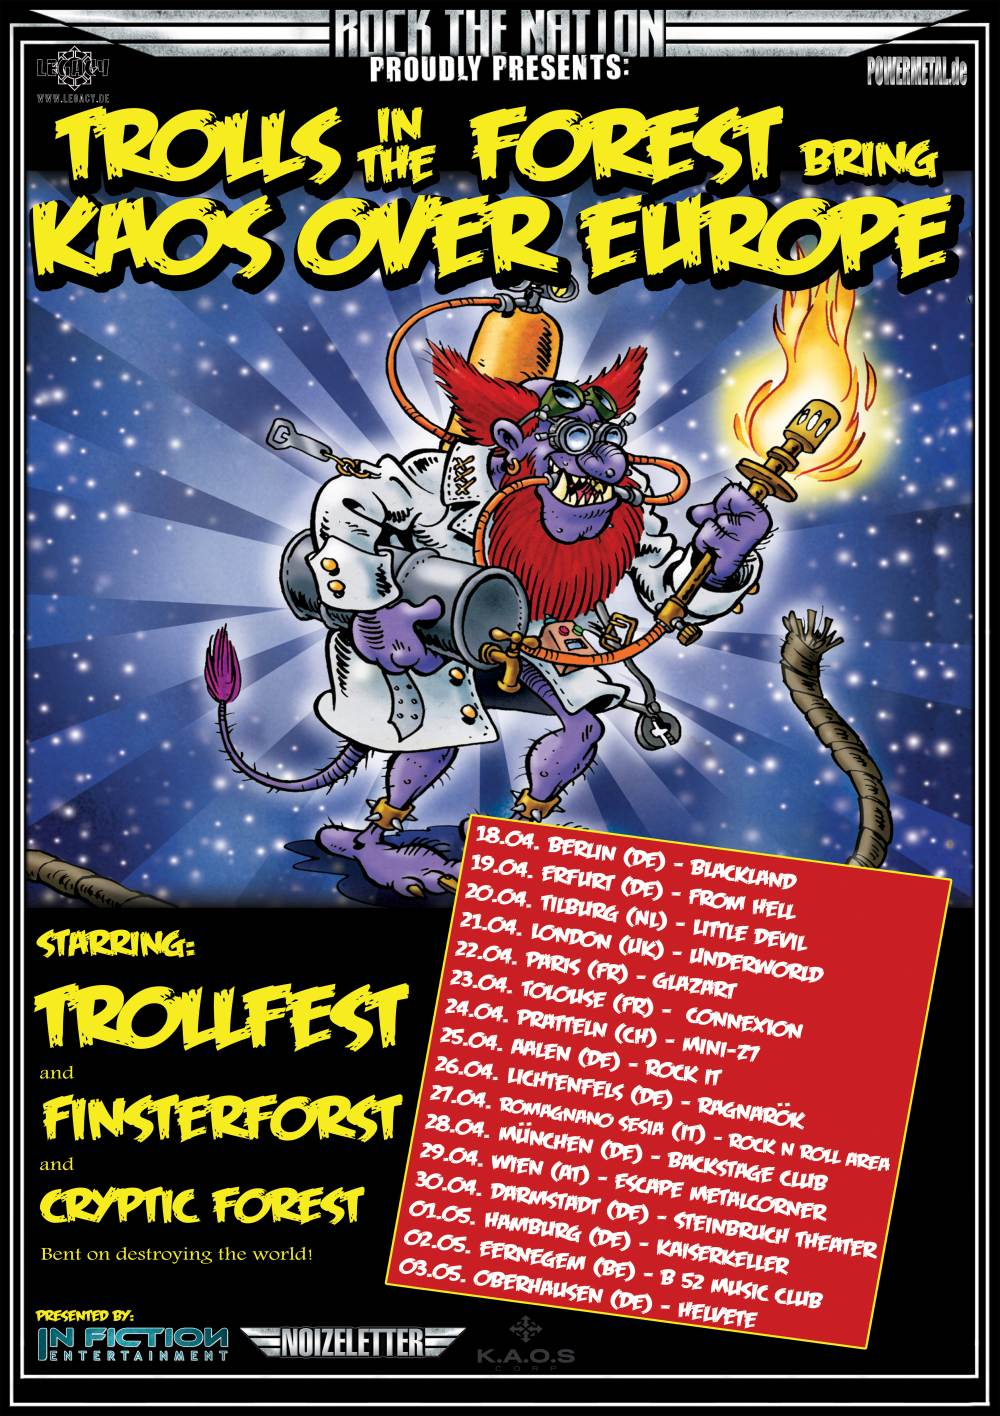 Trollfest - Finsterforst - Cryptic Forest - Trolls in the forest Tour 2014